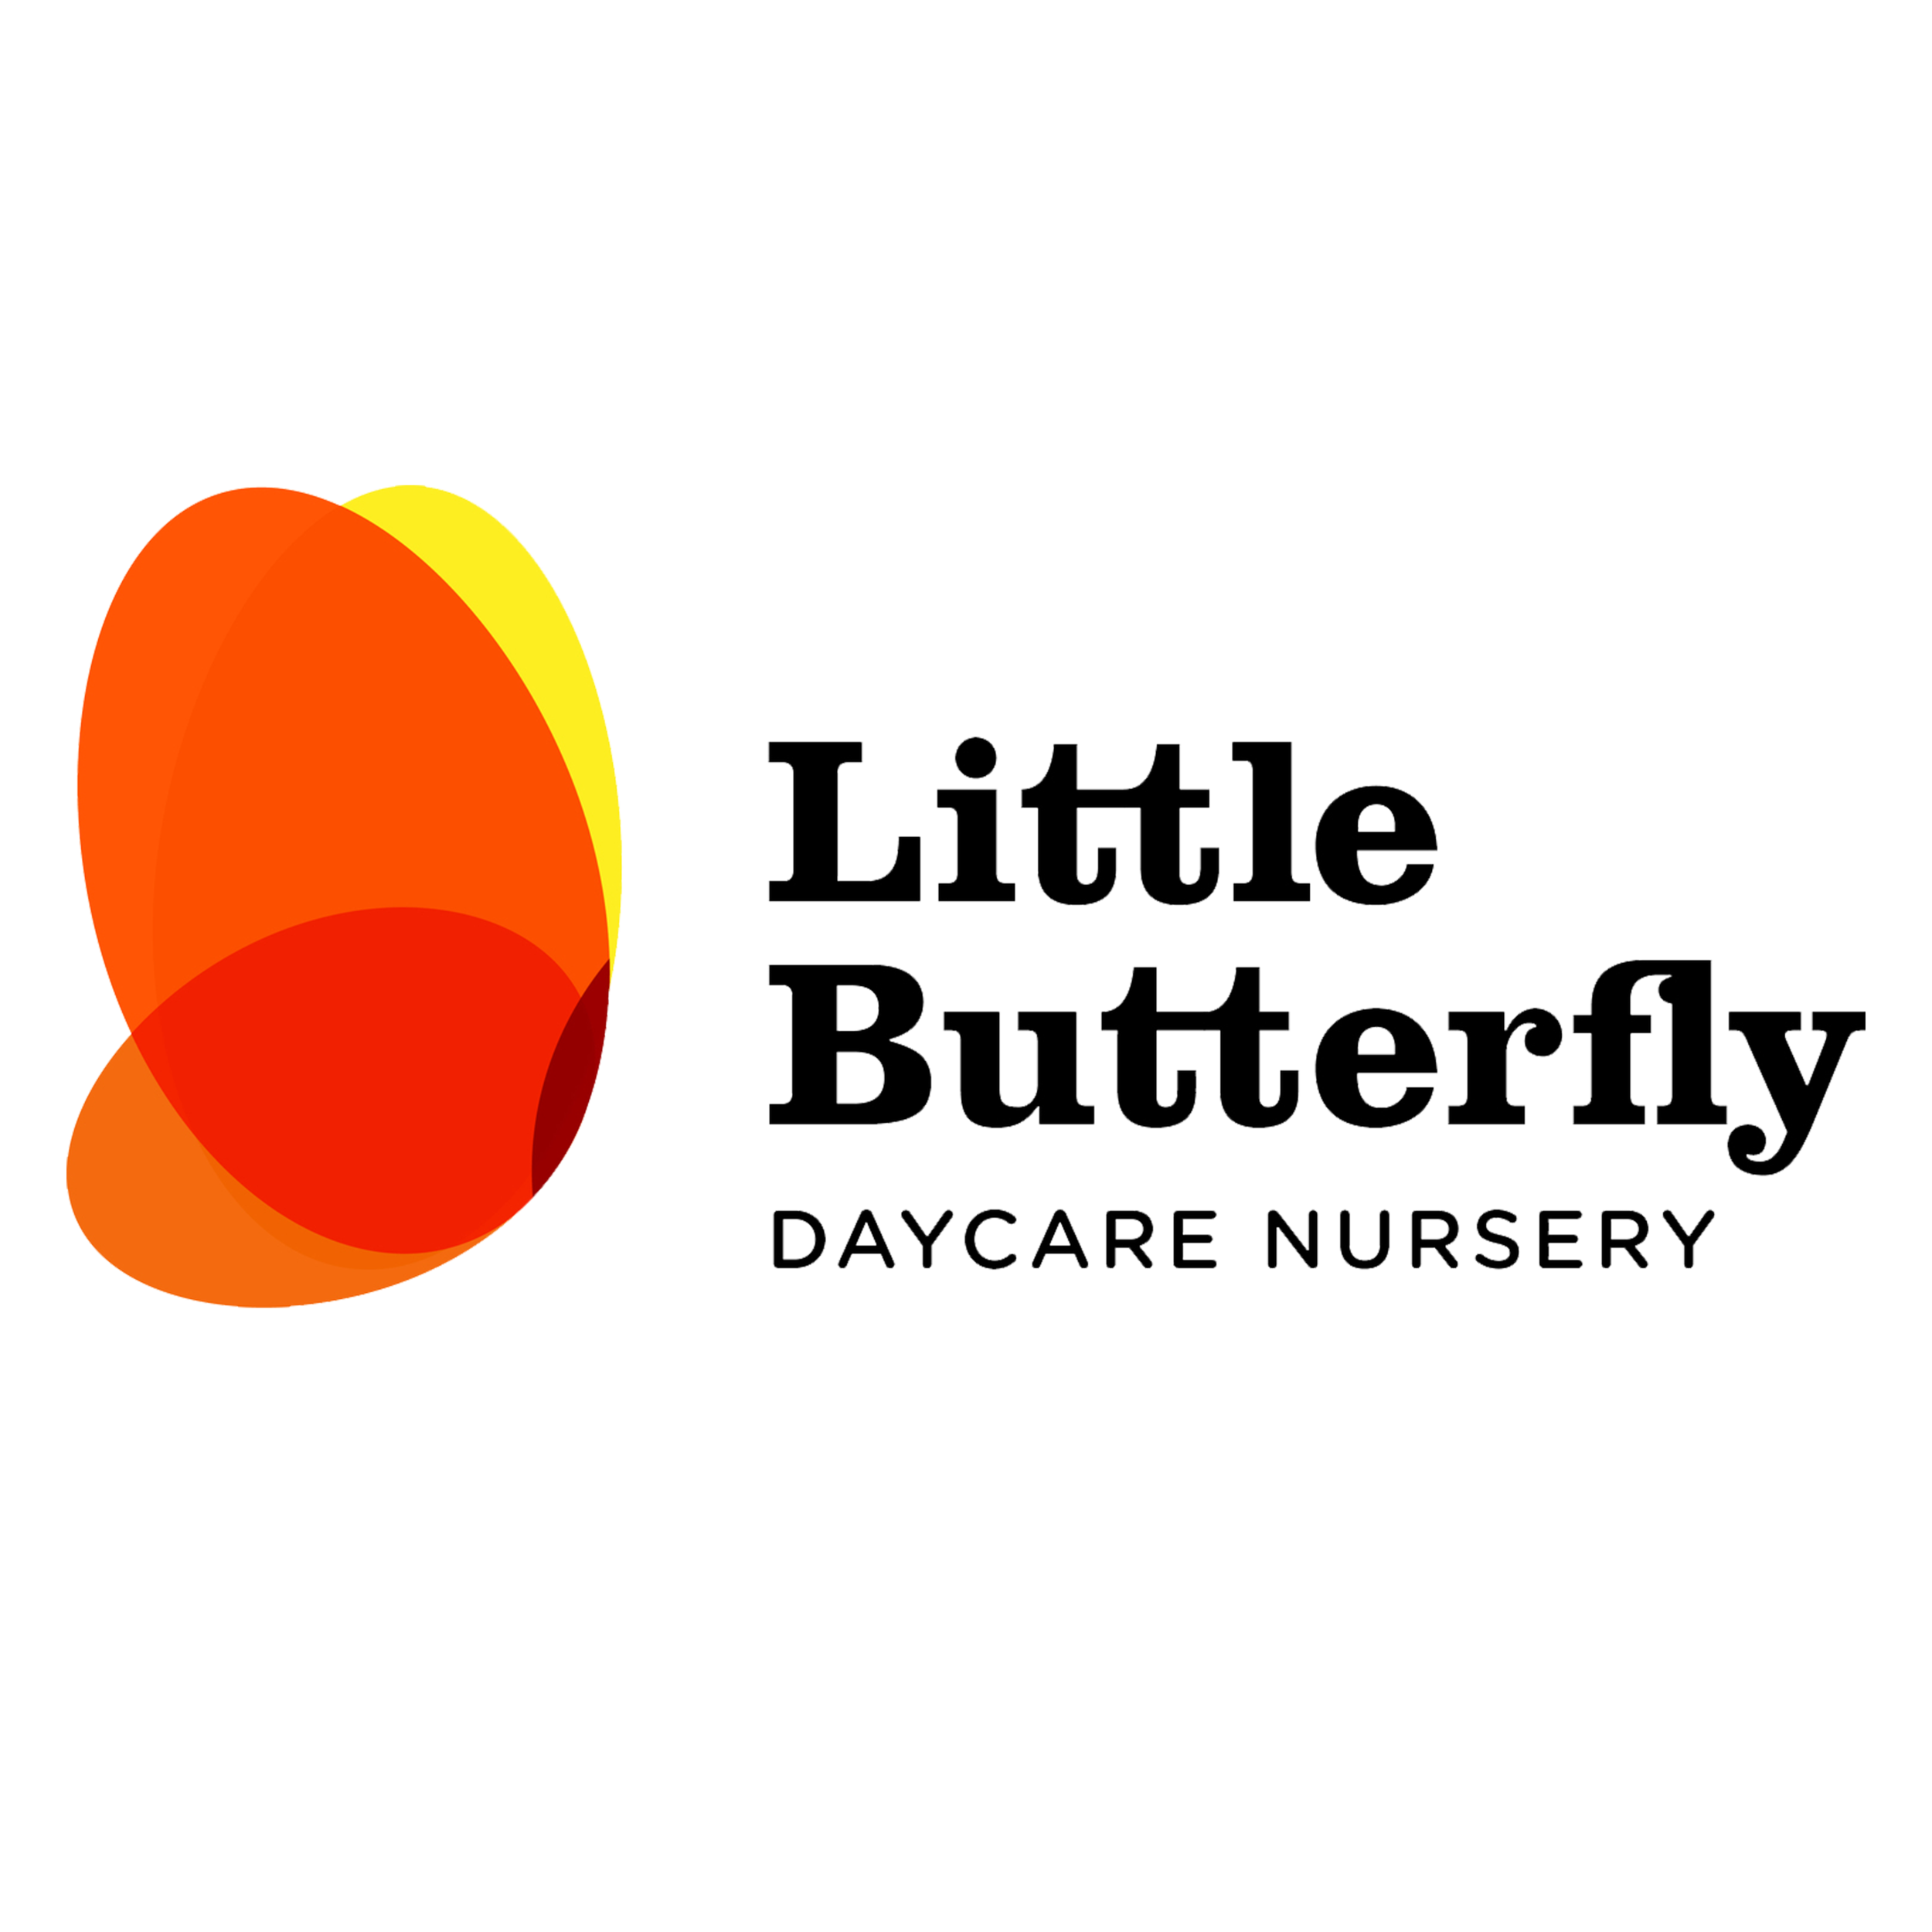 GrowPro Digital - Little Butterfly Daycare Nursery